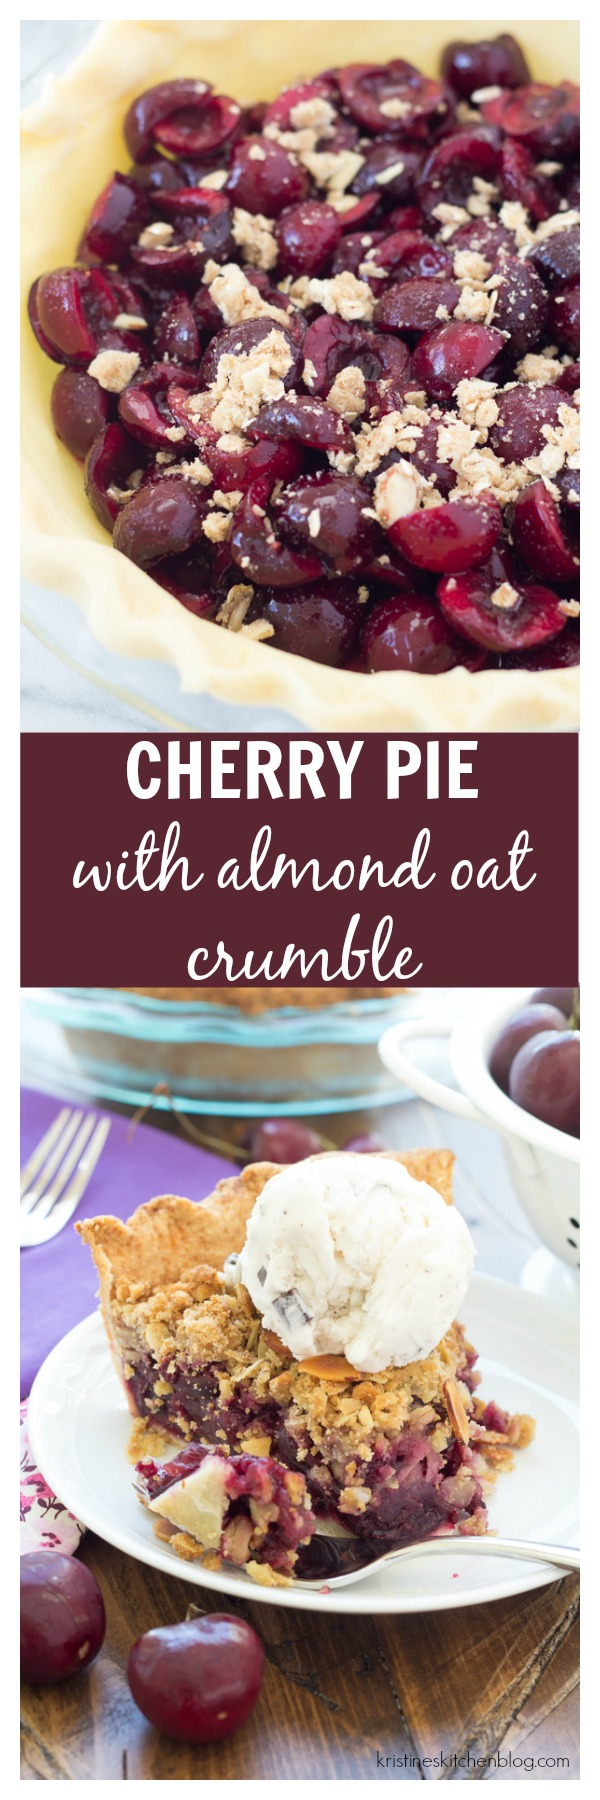 Juicy cherry pie with almond oat crumble!  Like a pie and a crisp in one!  The BEST!